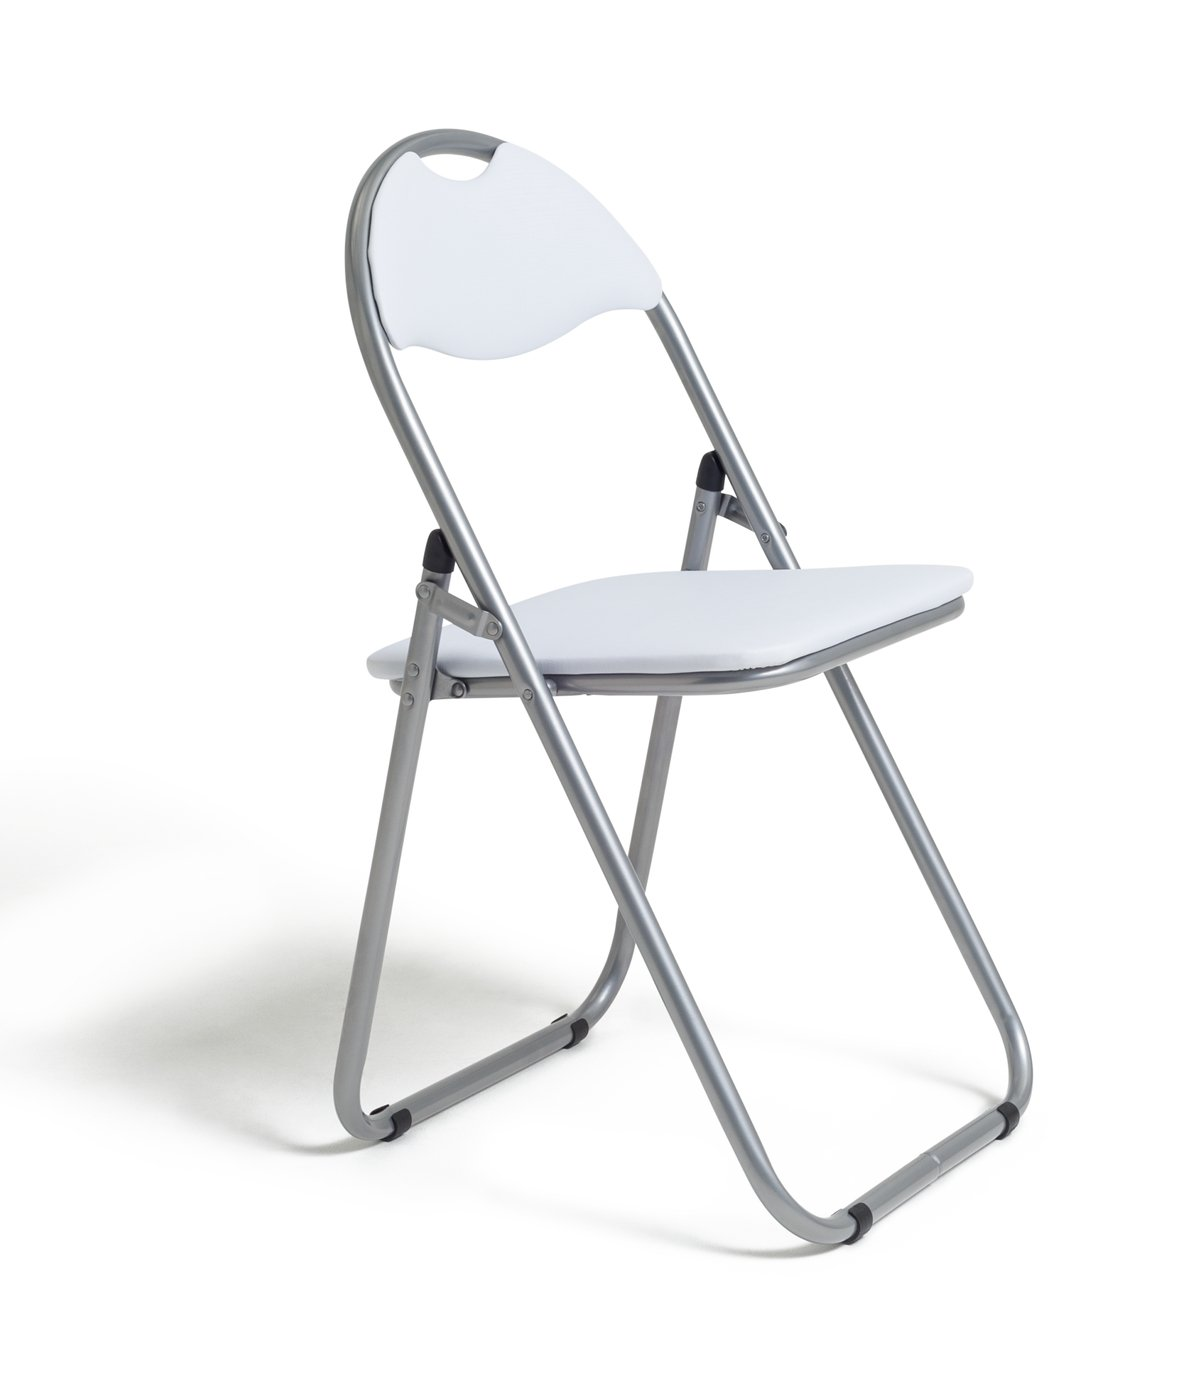 folding desk chair webbed chaise lounge chairs buy argos home padded office white